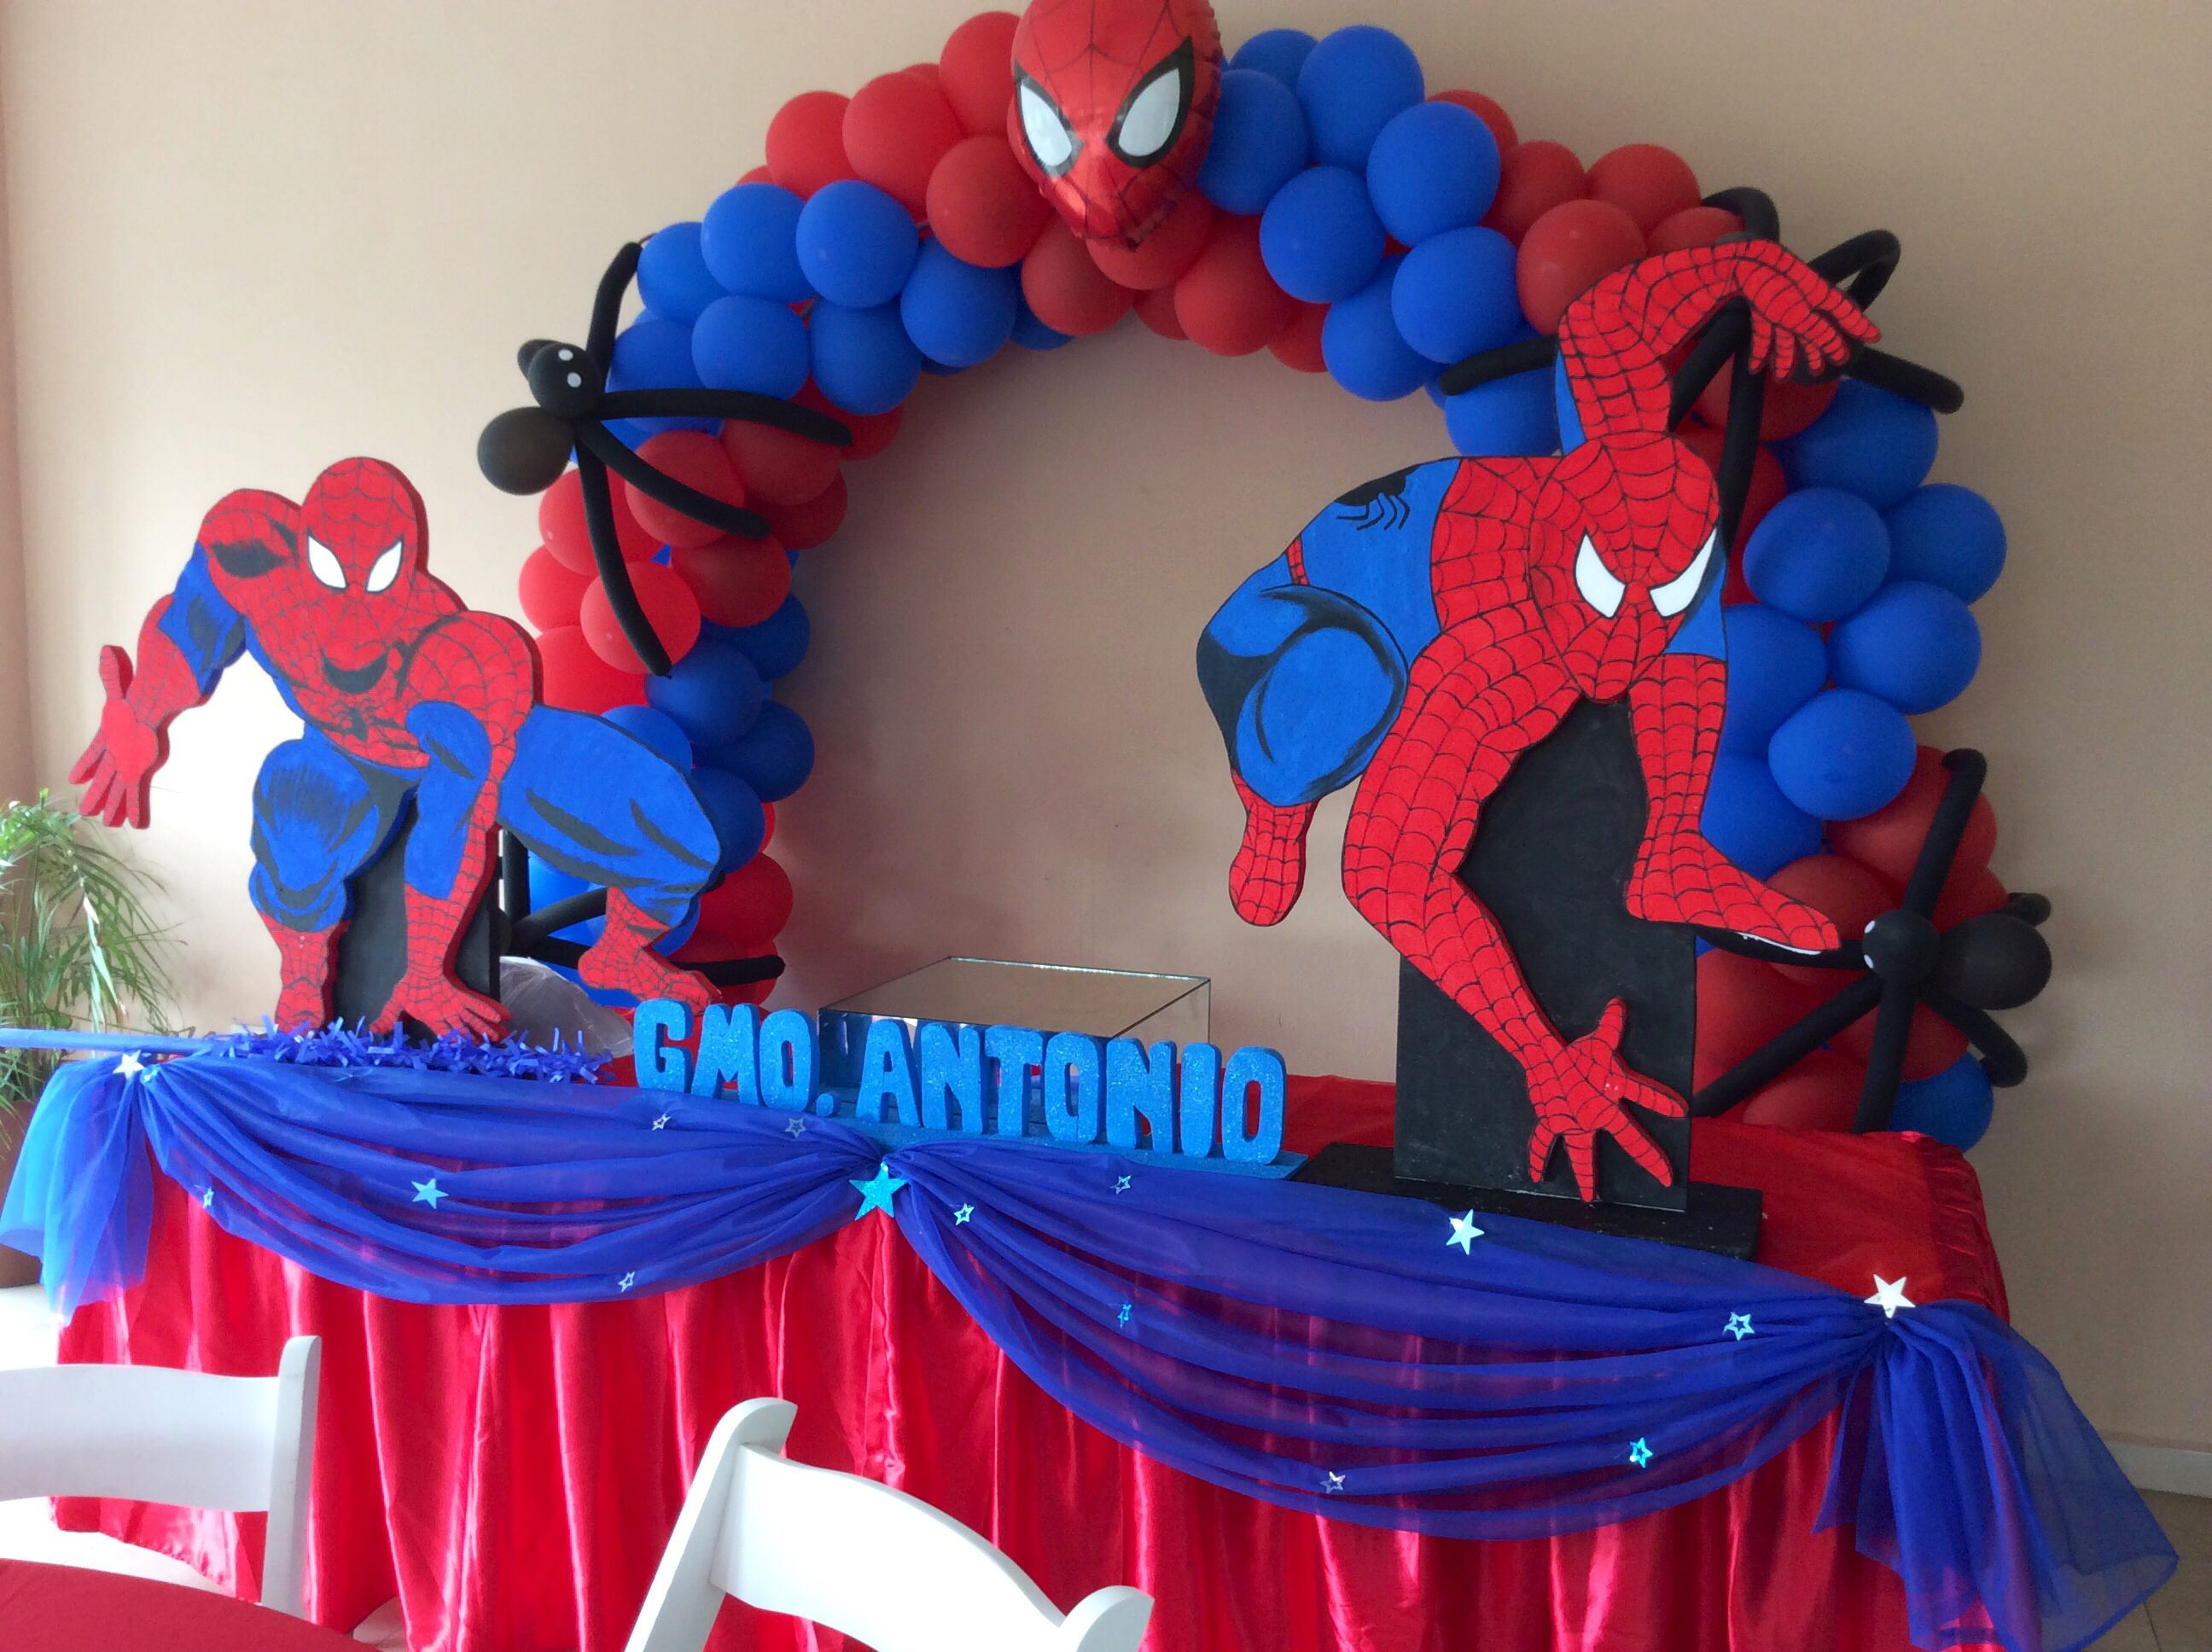 Arco spiderman decoraci n eventos norma decoraci n - Decoracion de aranas ...